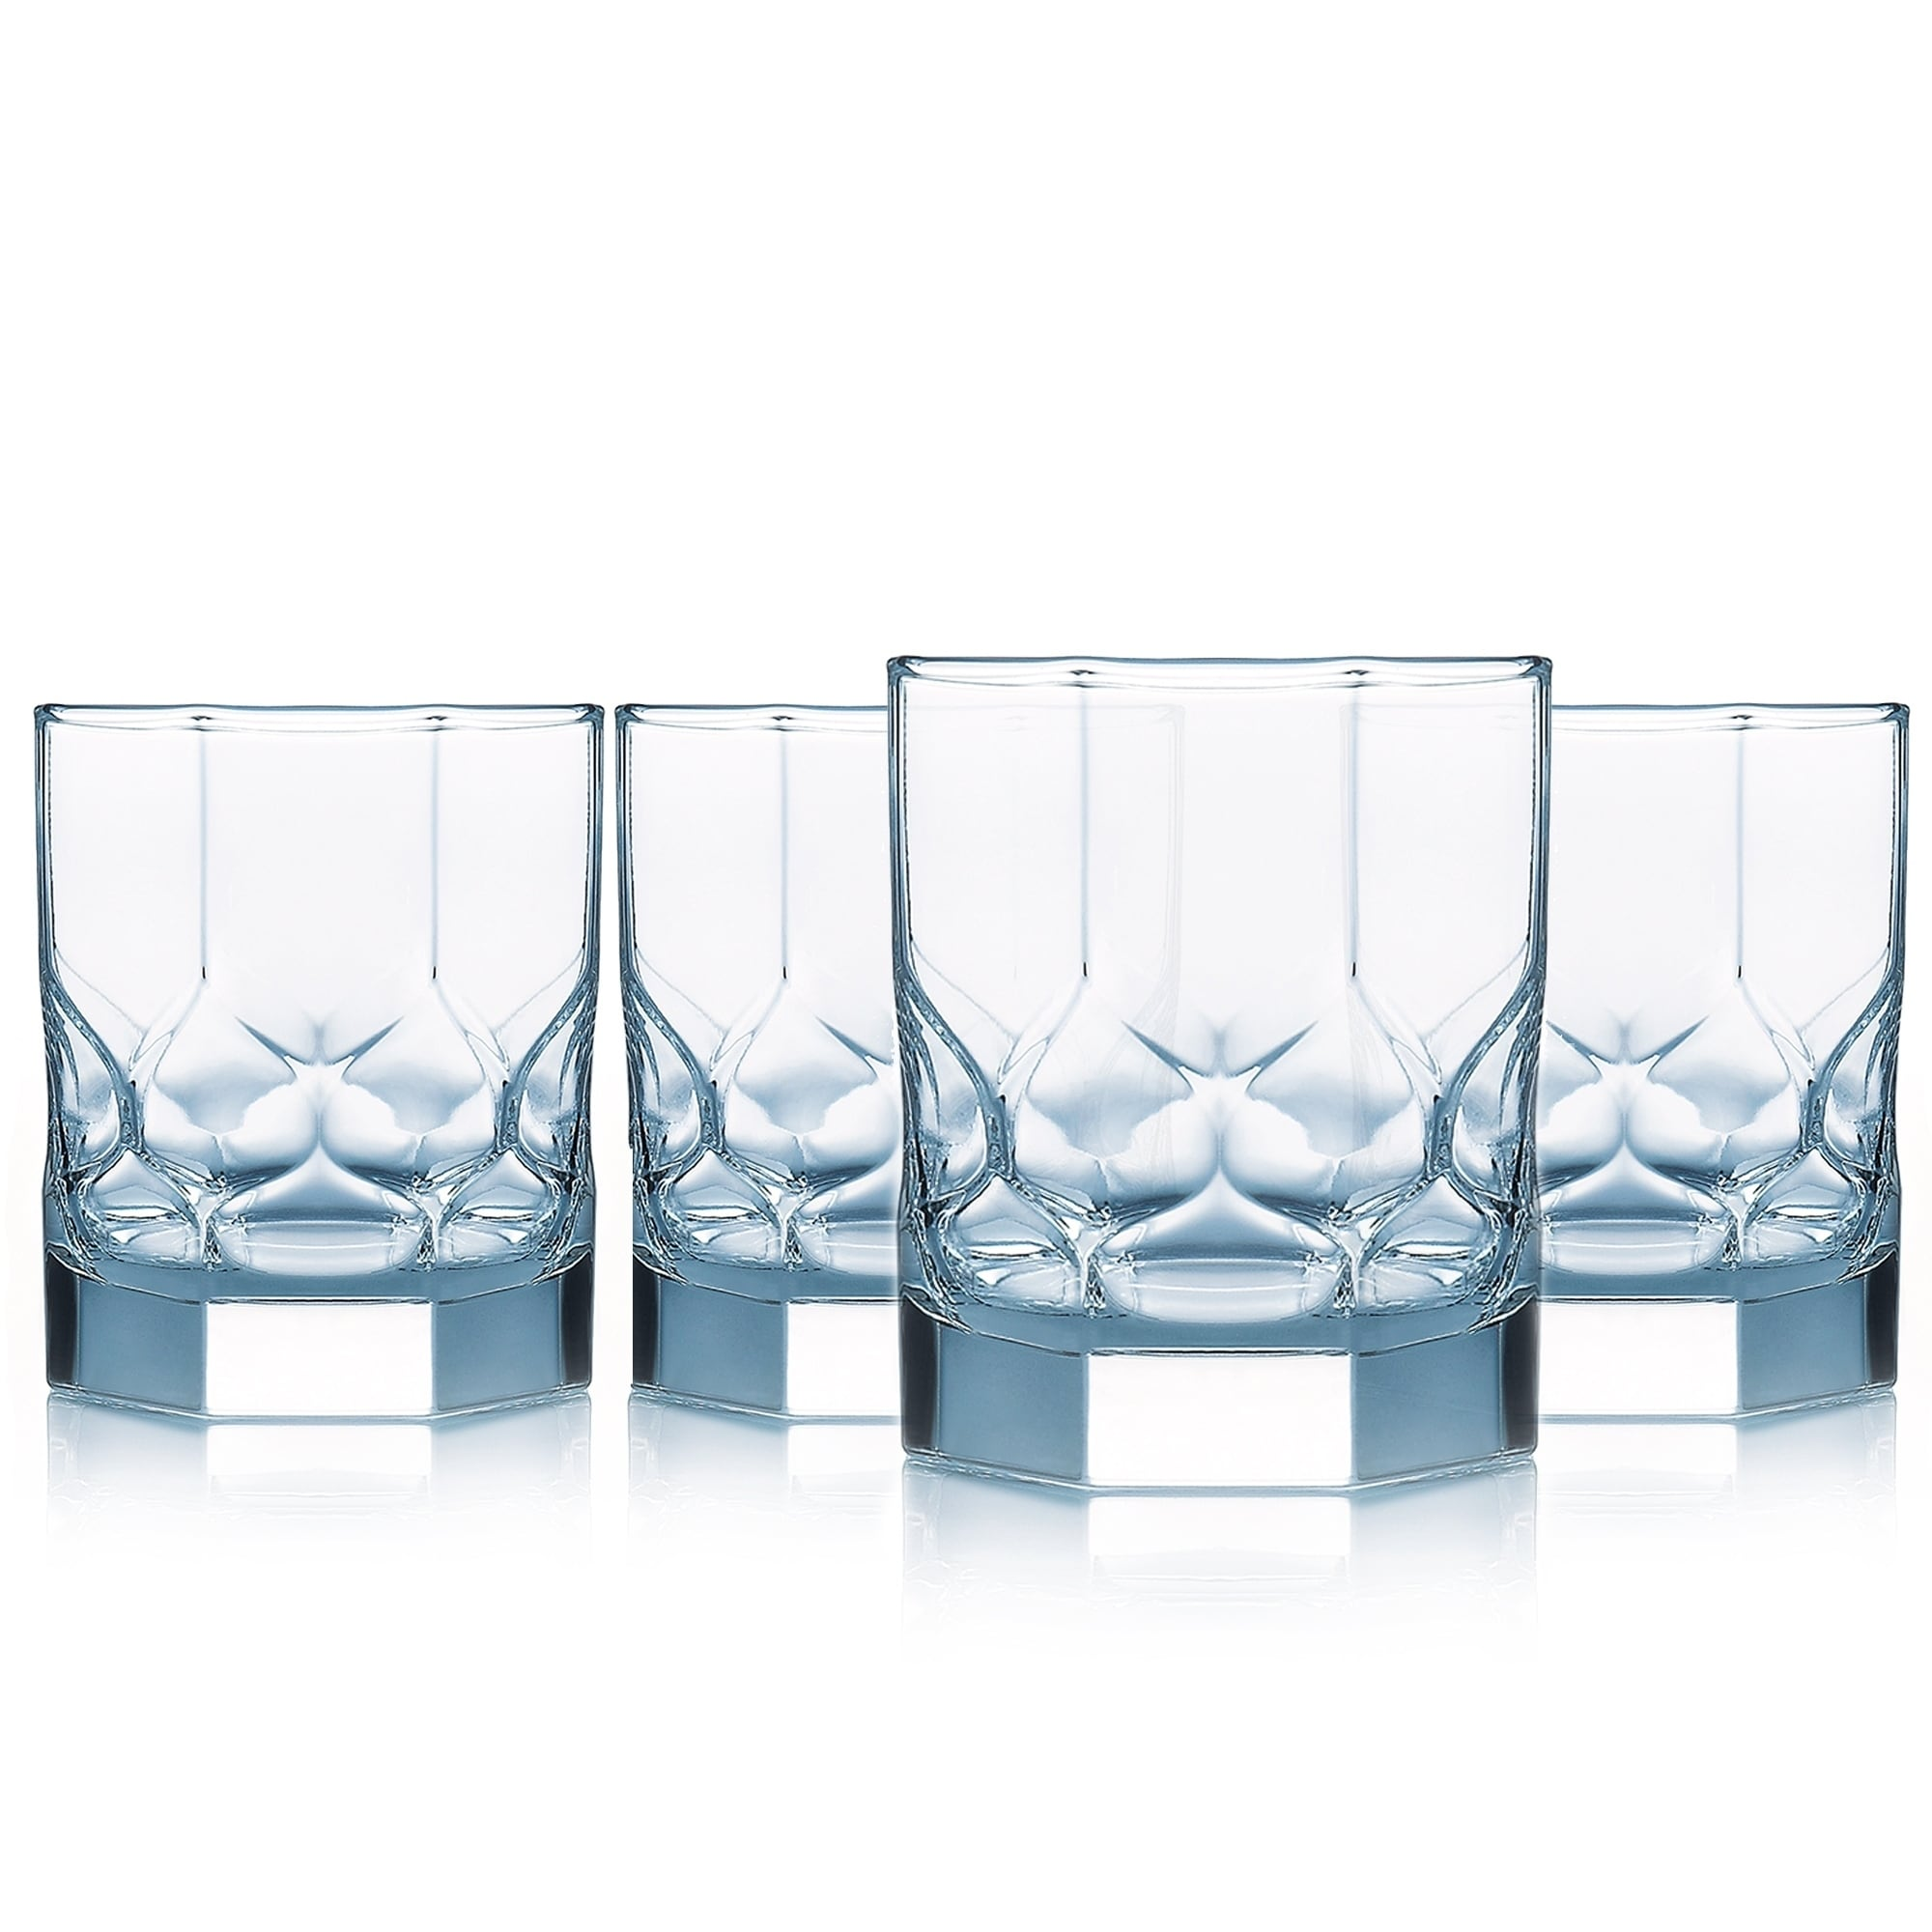 Luminarc Glass Details About Luminarc Topaz On The Rocks Glass Set Of 4 10 Ounce